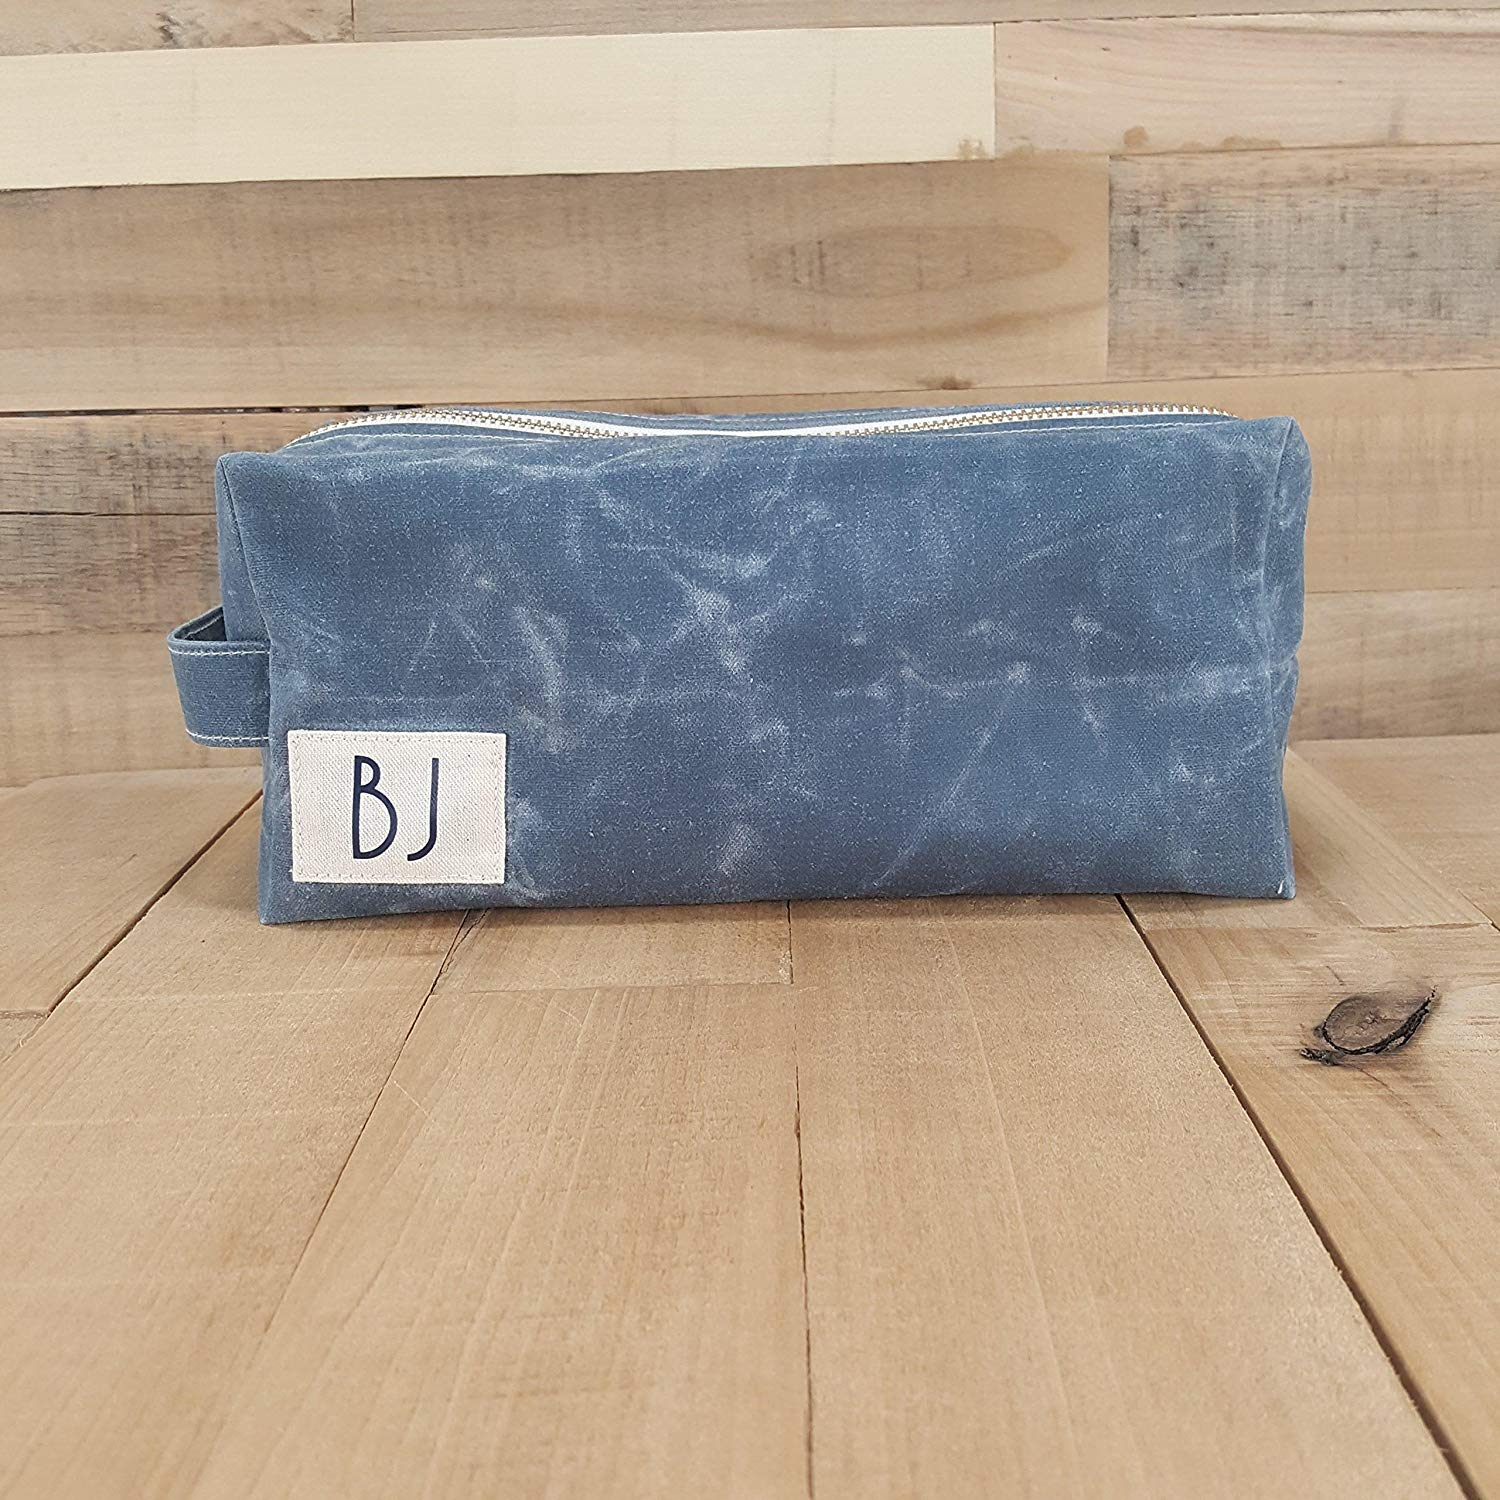 Personalized Dopp Kit for Men | Waxed Canvas Toiletry Bag | Dopp Kit | Mens Toiletry Bag | Waxed Canvas Dopp Kit | Gift for Dad | Boyfriend Gifts